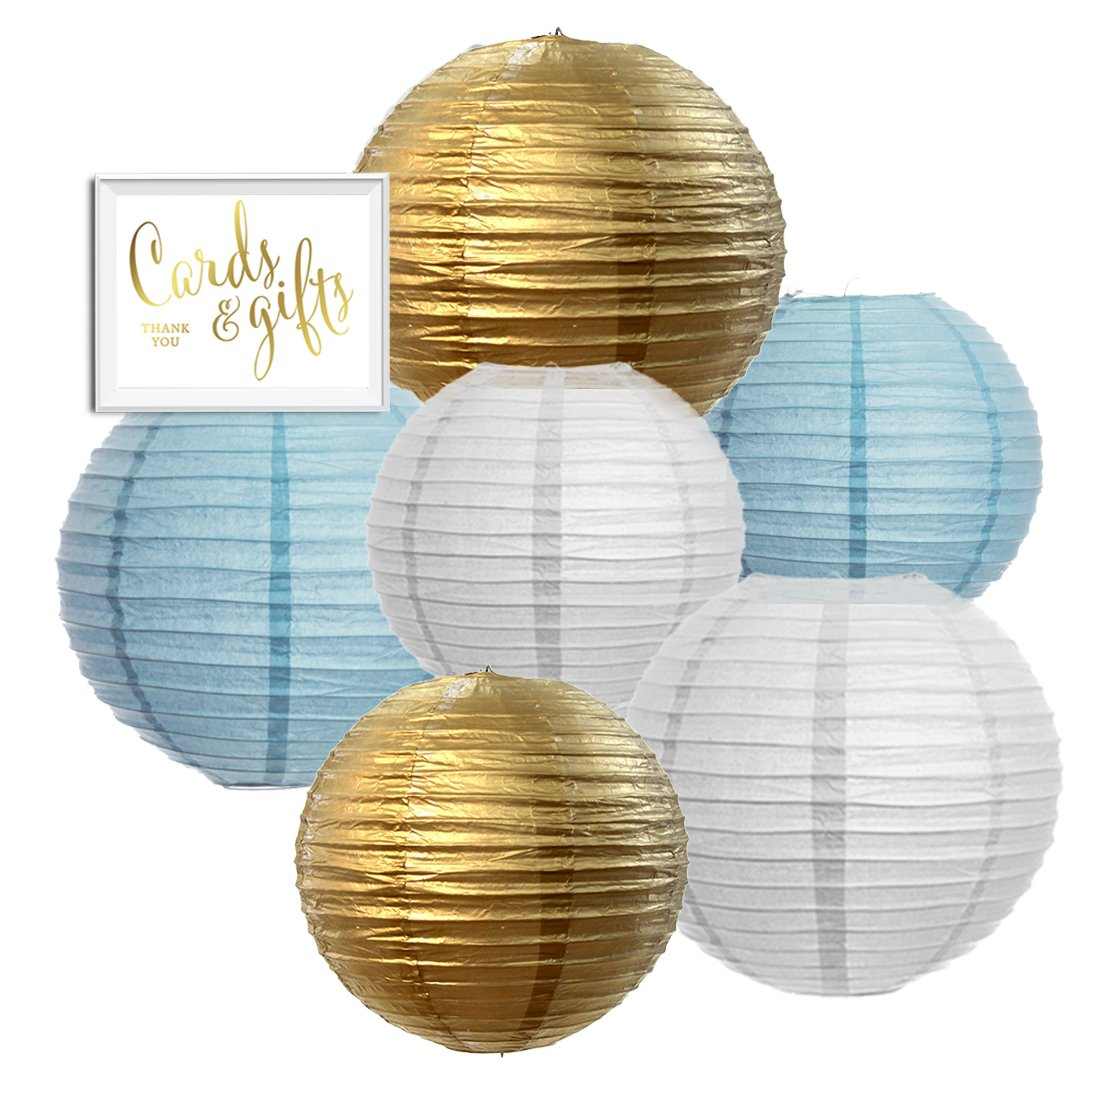 Andaz Press Hanging Paper Lantern Party Decor Trio Kit with Free Party Sign, Gold, Baby Blue, White, 6-Pack, For Boy Baby Shower Baptism Decorations